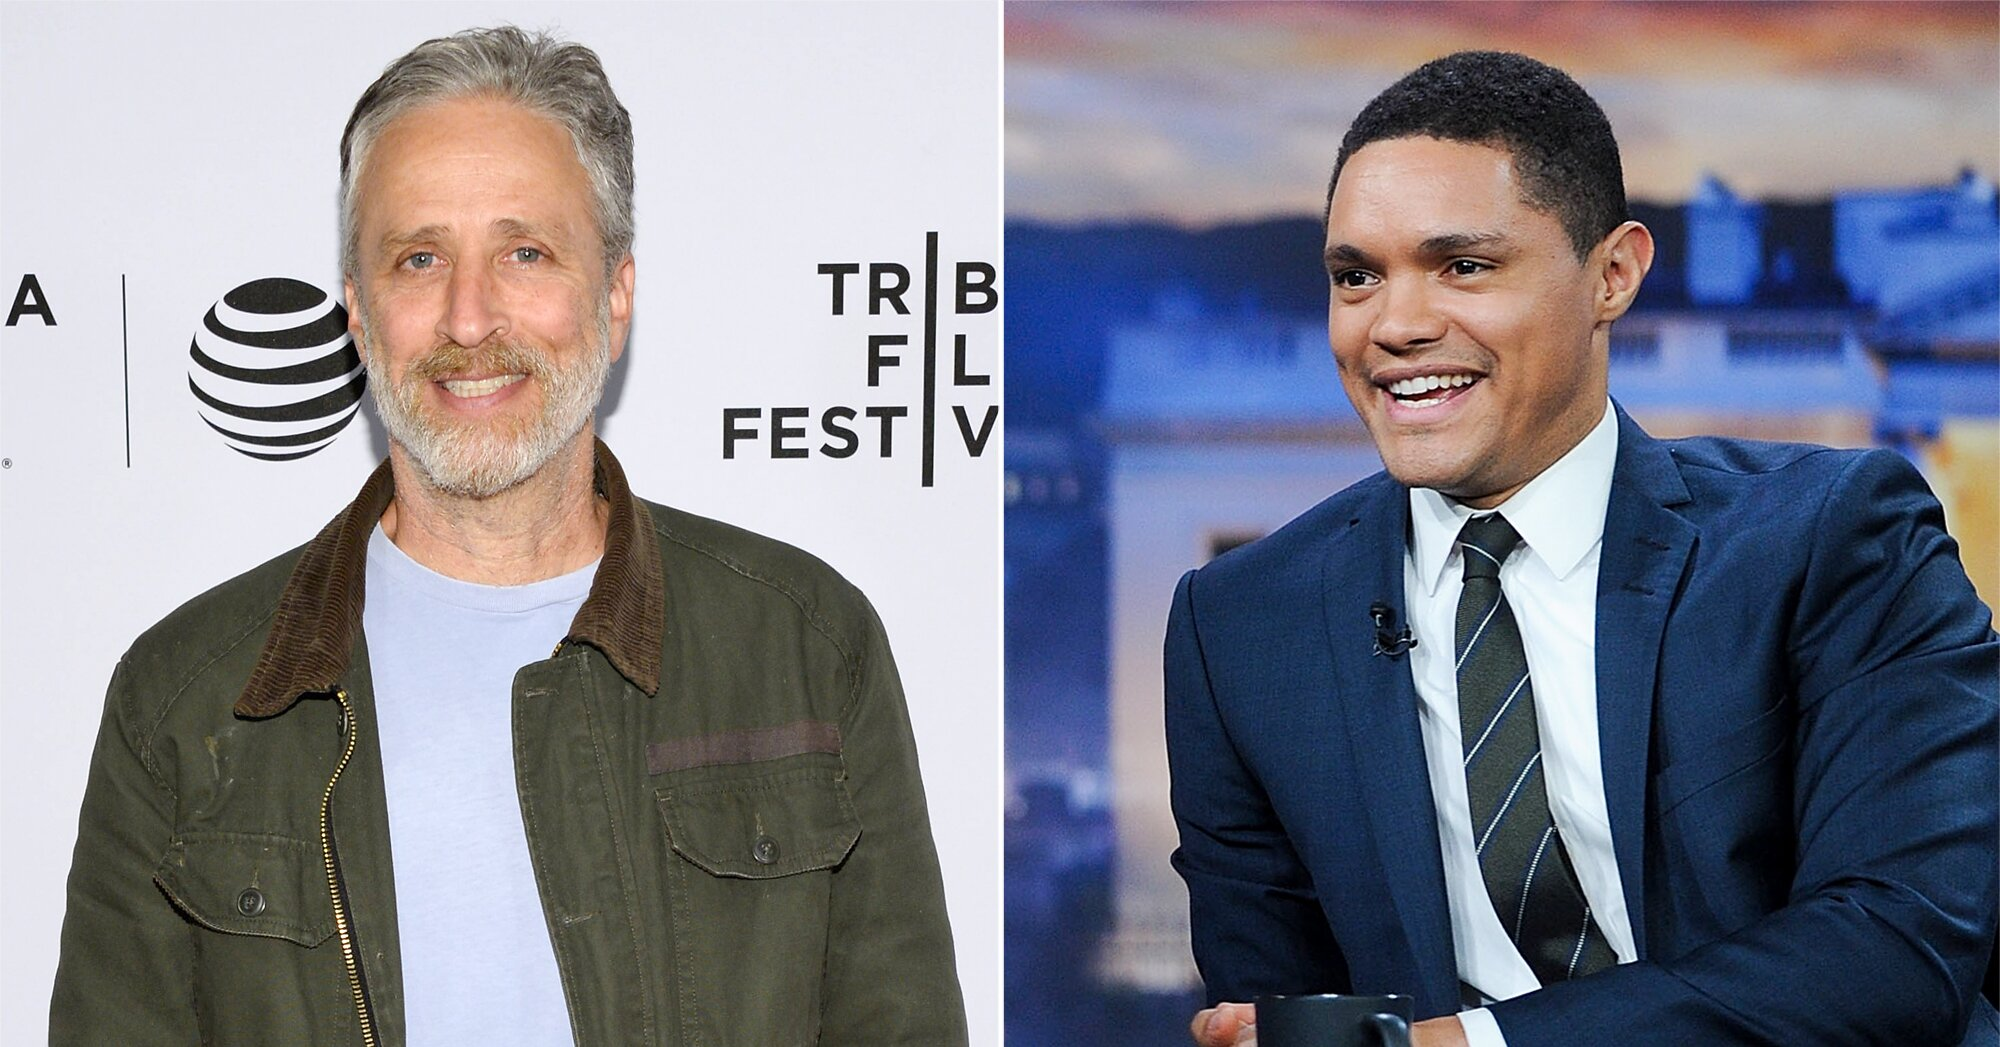 Jon Stewart shares how Trevor Noah elevated 'The Daily Show'